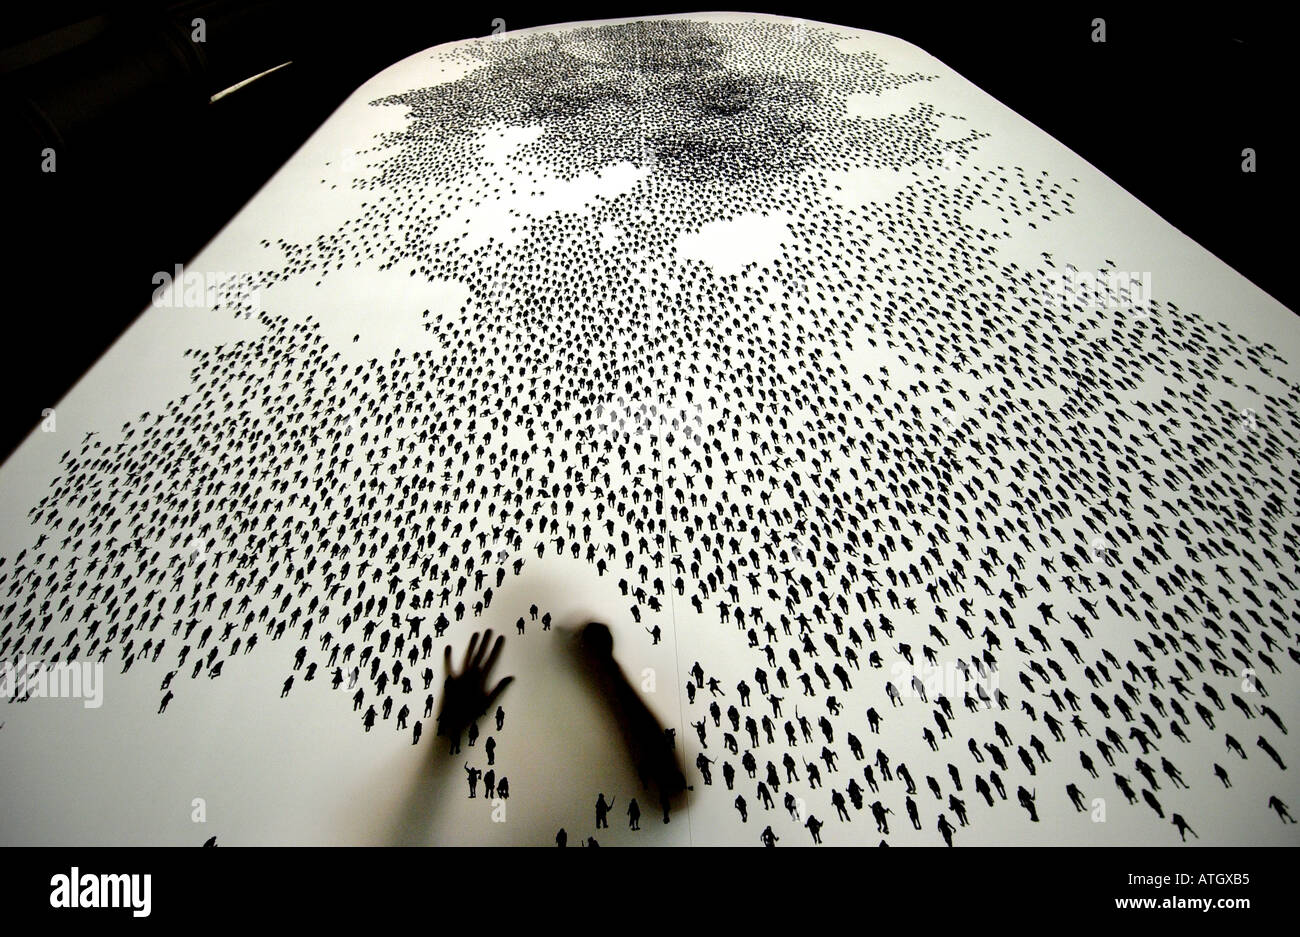 Artist painstakingly draws ten thousand tiny human figures on a screen - Stock Image